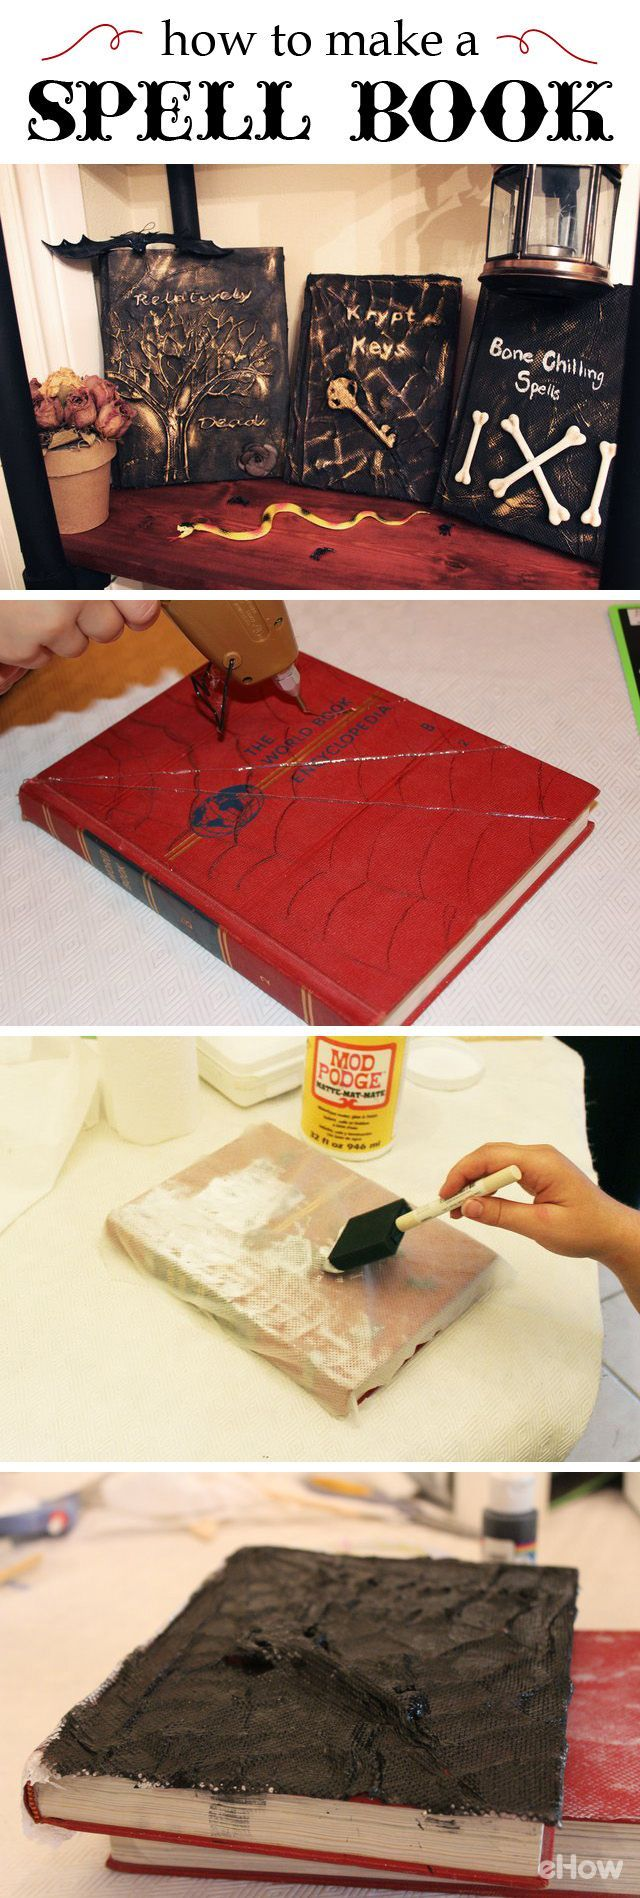 """Halloween decorations are so much fun! Make your very own old, and probably haunted, spell book! Does anyone else wish they had the one from Hocus Pocus? """"Oh, boooOOOoook!""""  Easy DIY instructions here: http://www.ehow.com/how_5419689_make-spell-book.html"""